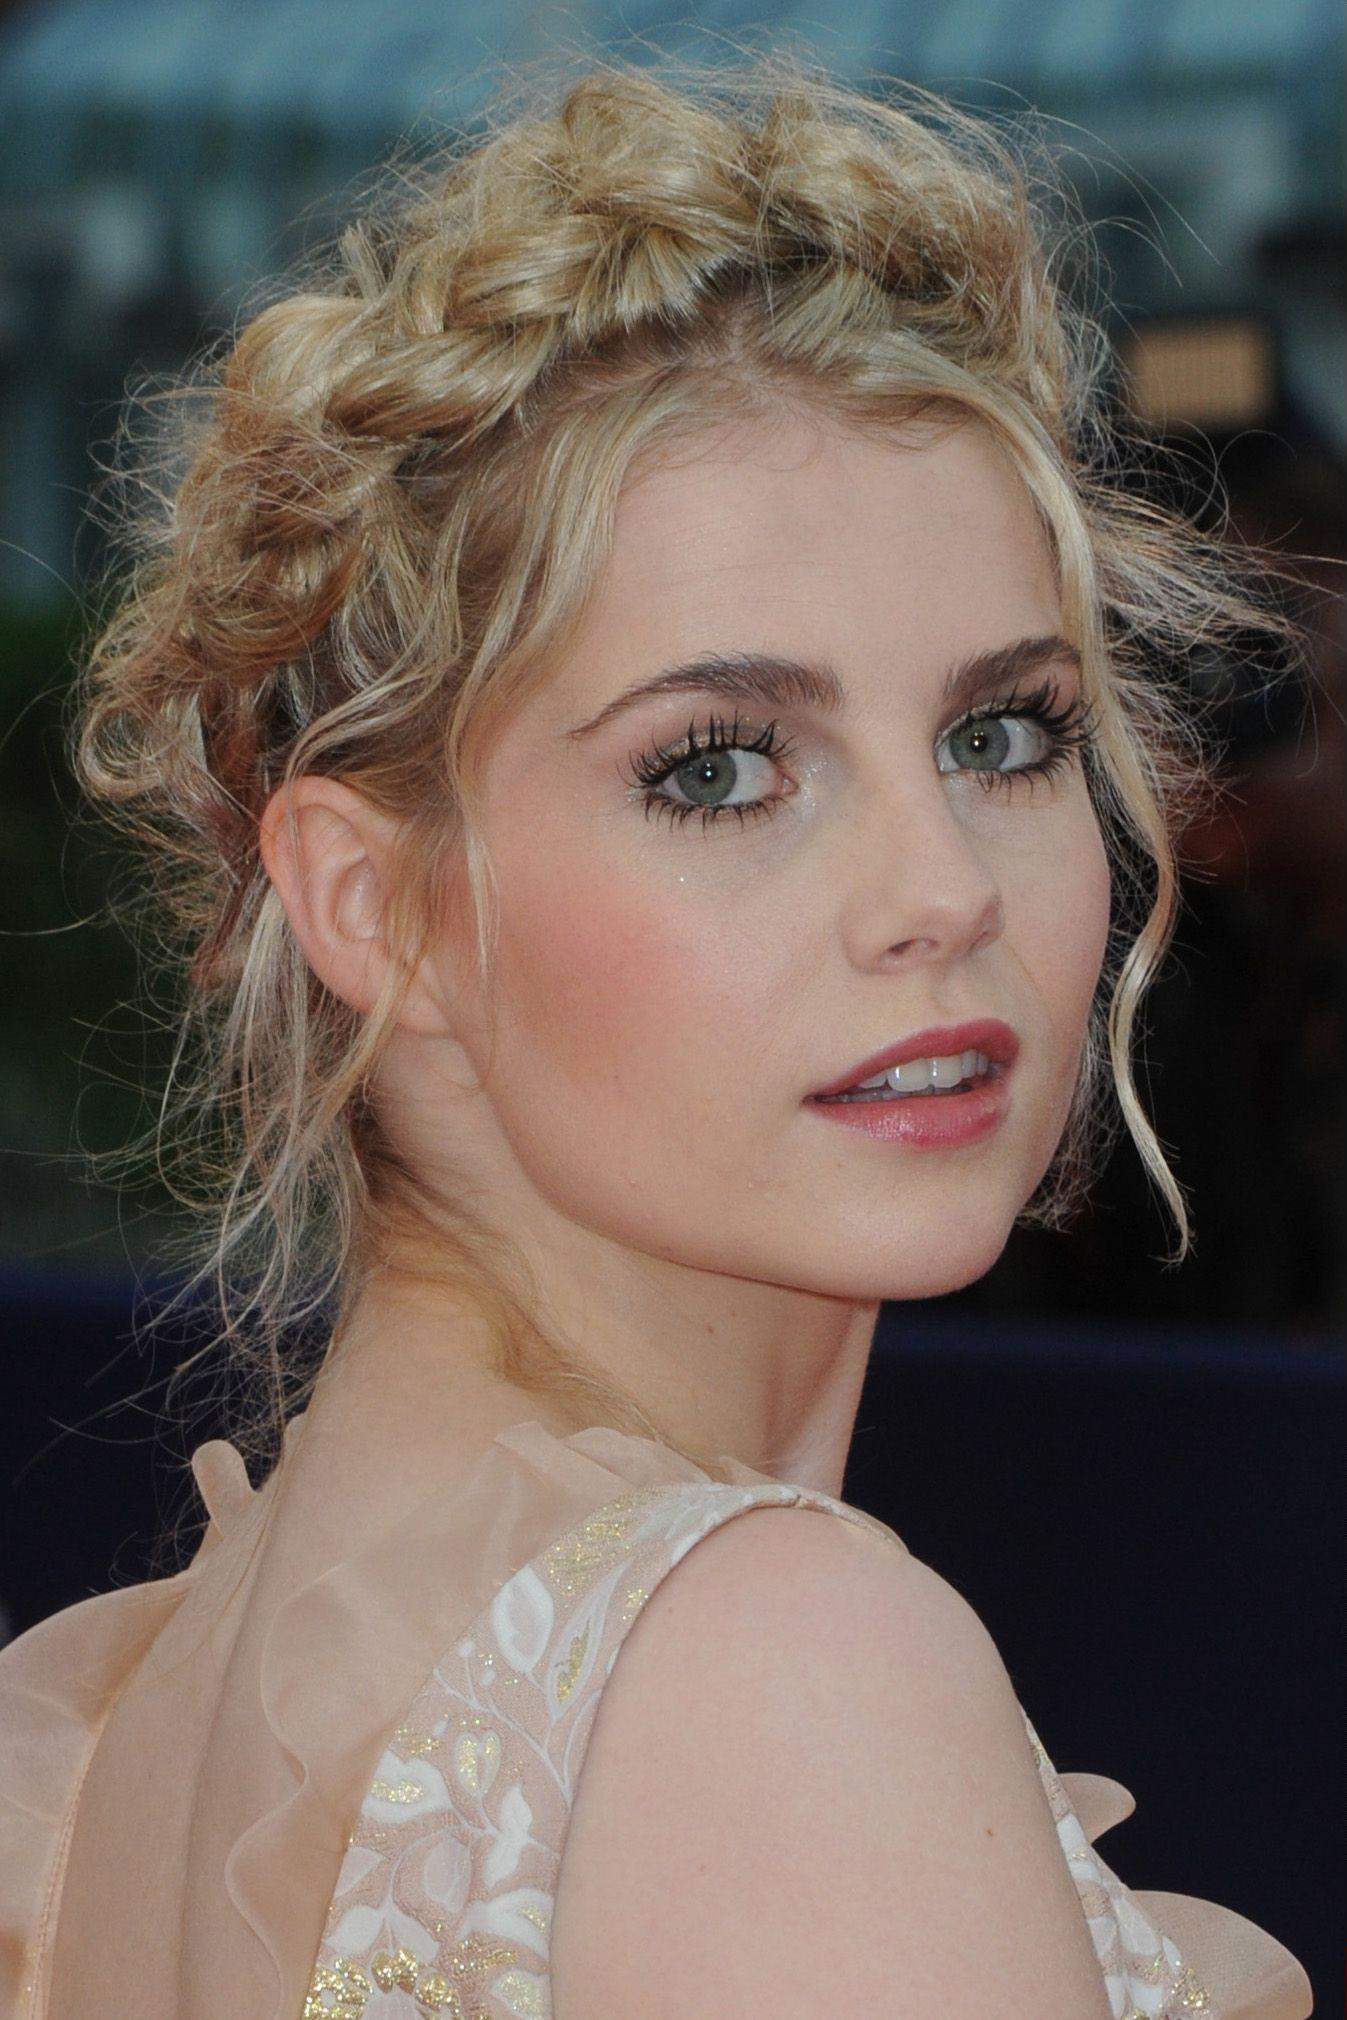 Greek hairstyles 8 looks thatll instantly make you feel like a goddess grecian hairstyles close up shot of lucy boynton with romantic milkmaid braid hairstyle solutioingenieria Gallery